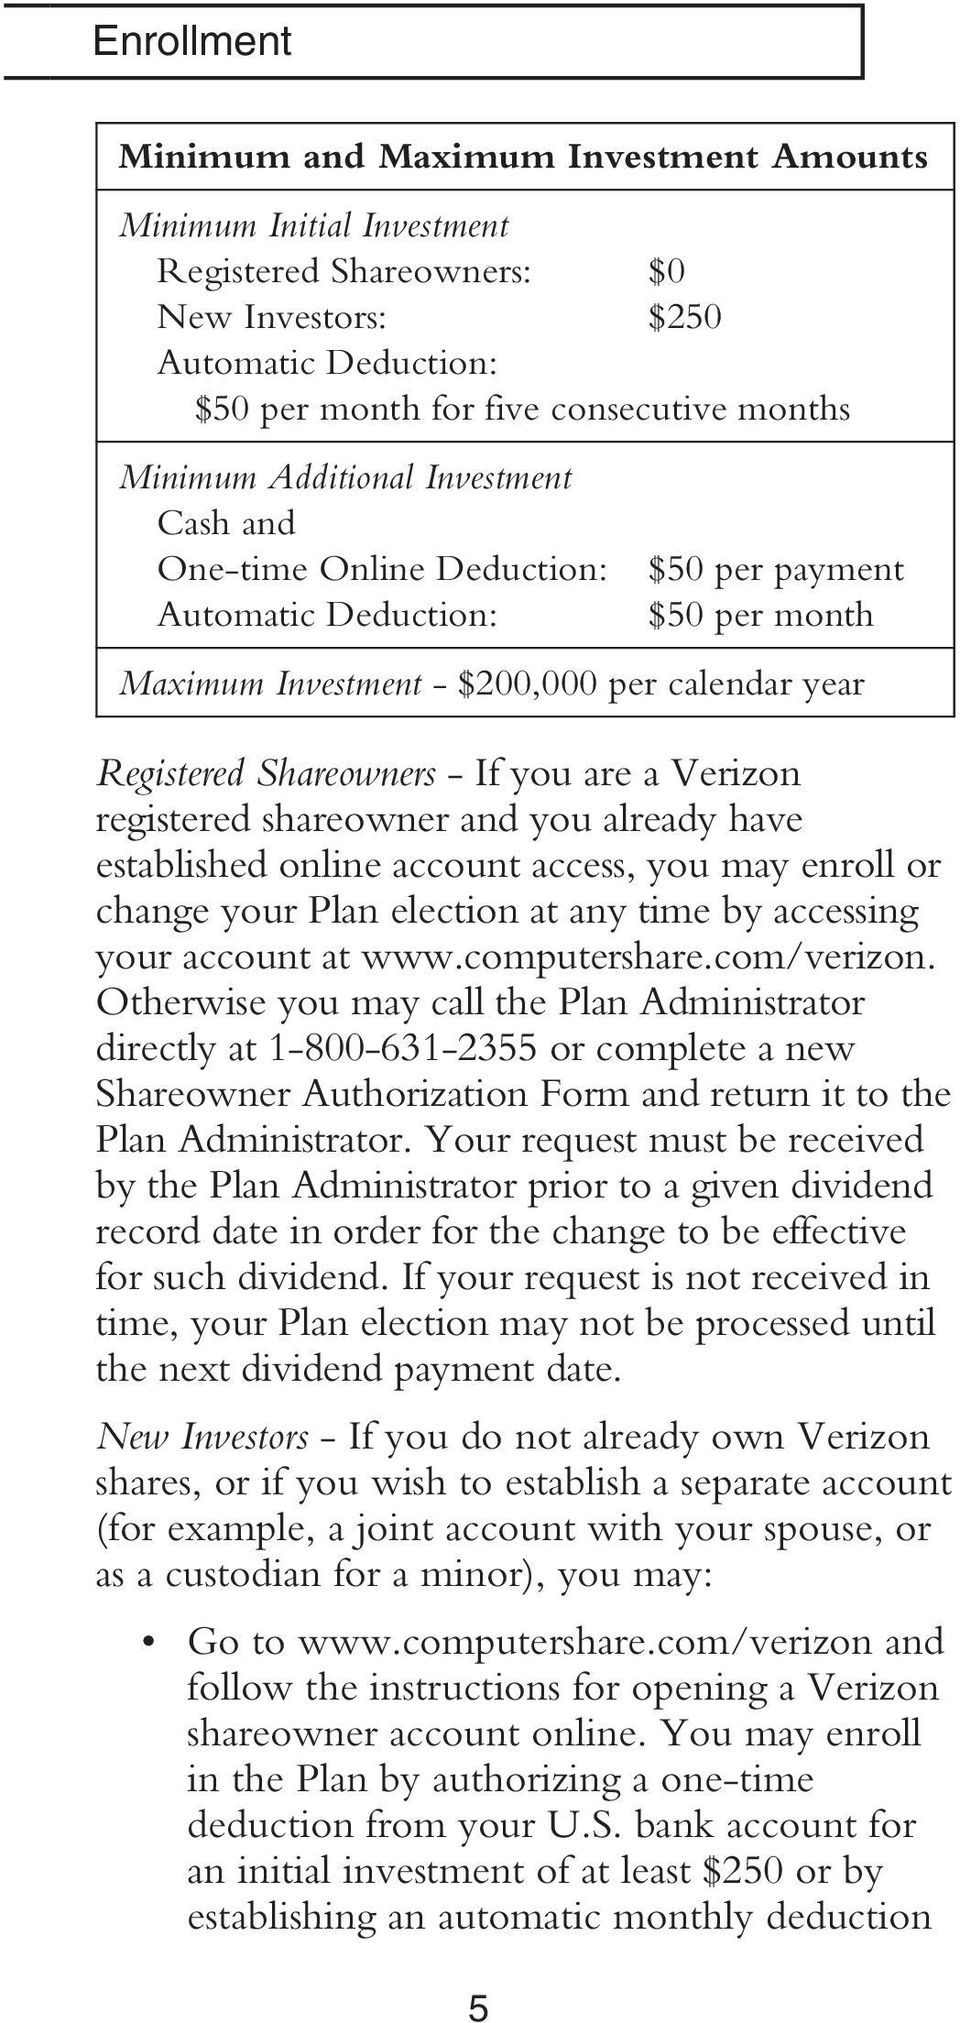 Verizon registered shareowner and you already have established online account access, you may enroll or change your Plan election at any time by accessing your account at www.computershare.